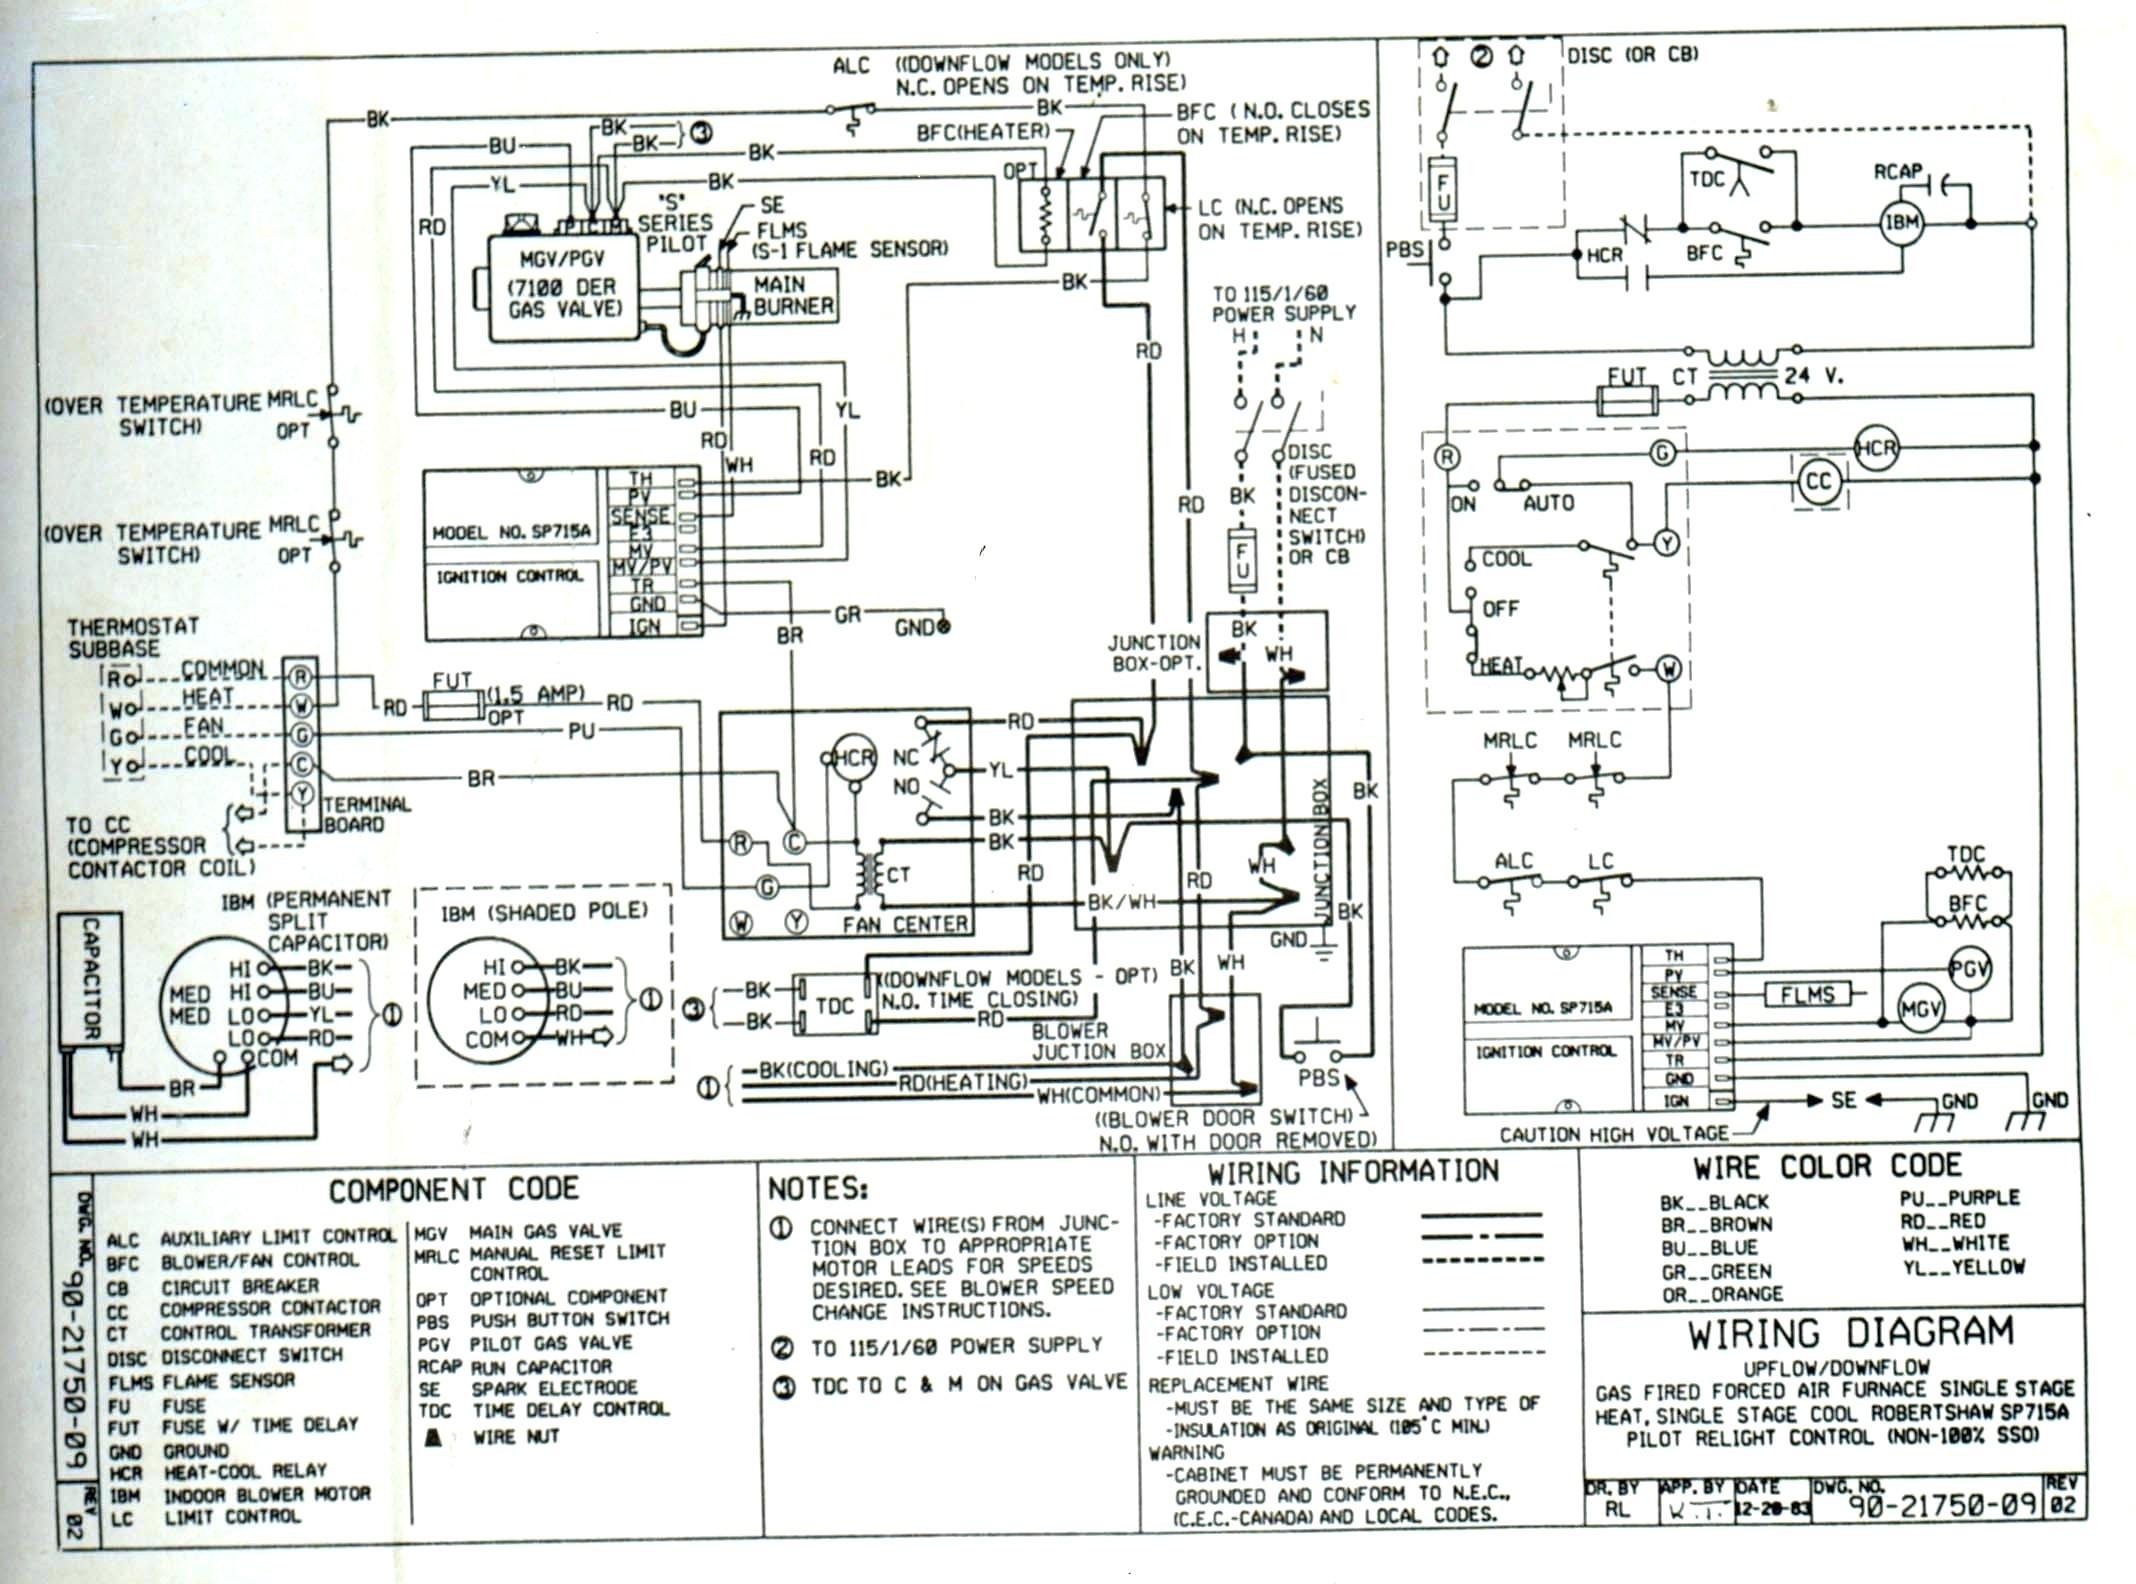 goodman heat pump package unit wiring diagram Download Electric Heat Strip Wiring Diagram Beautiful Goodman DOWNLOAD Wiring Diagram